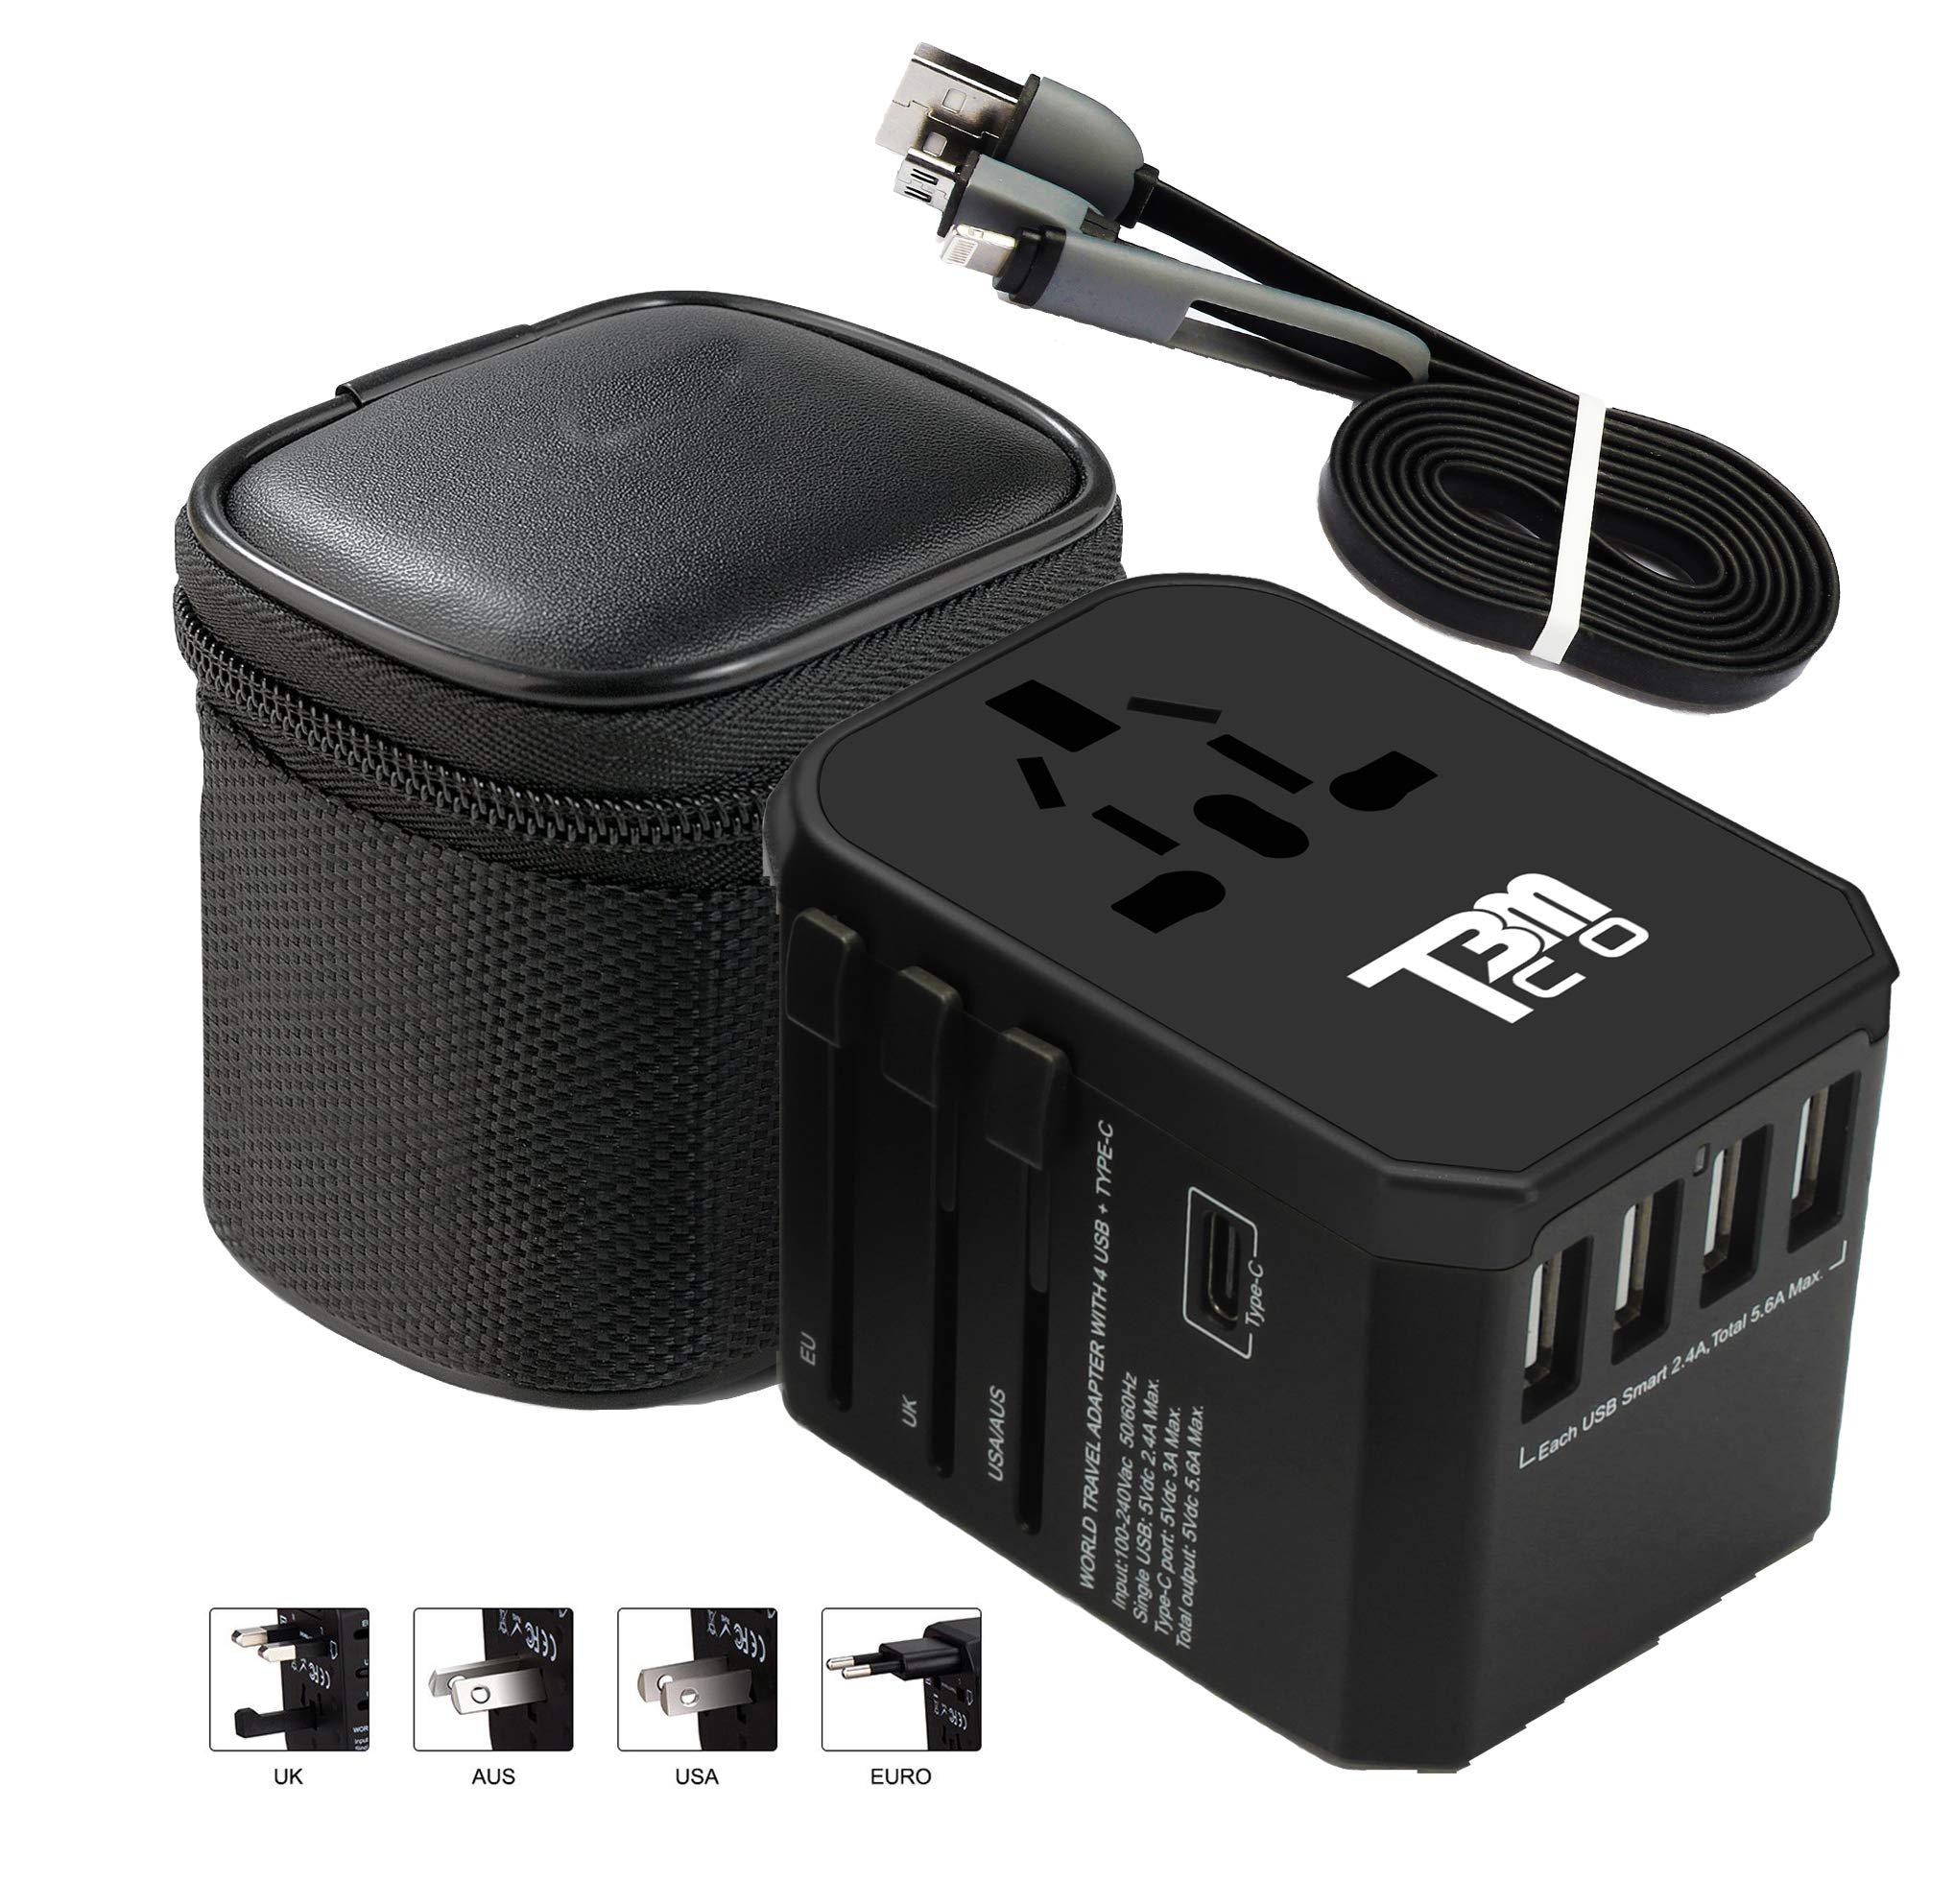 T3MCO Travel Adapter, Travel Adapter UK to Europe, 5 Colors, USA Travel Adapter, Aus Travel Adapter, Universal Travel Adapter, USB Travel Adapter (Black, 4 USB + Type C)